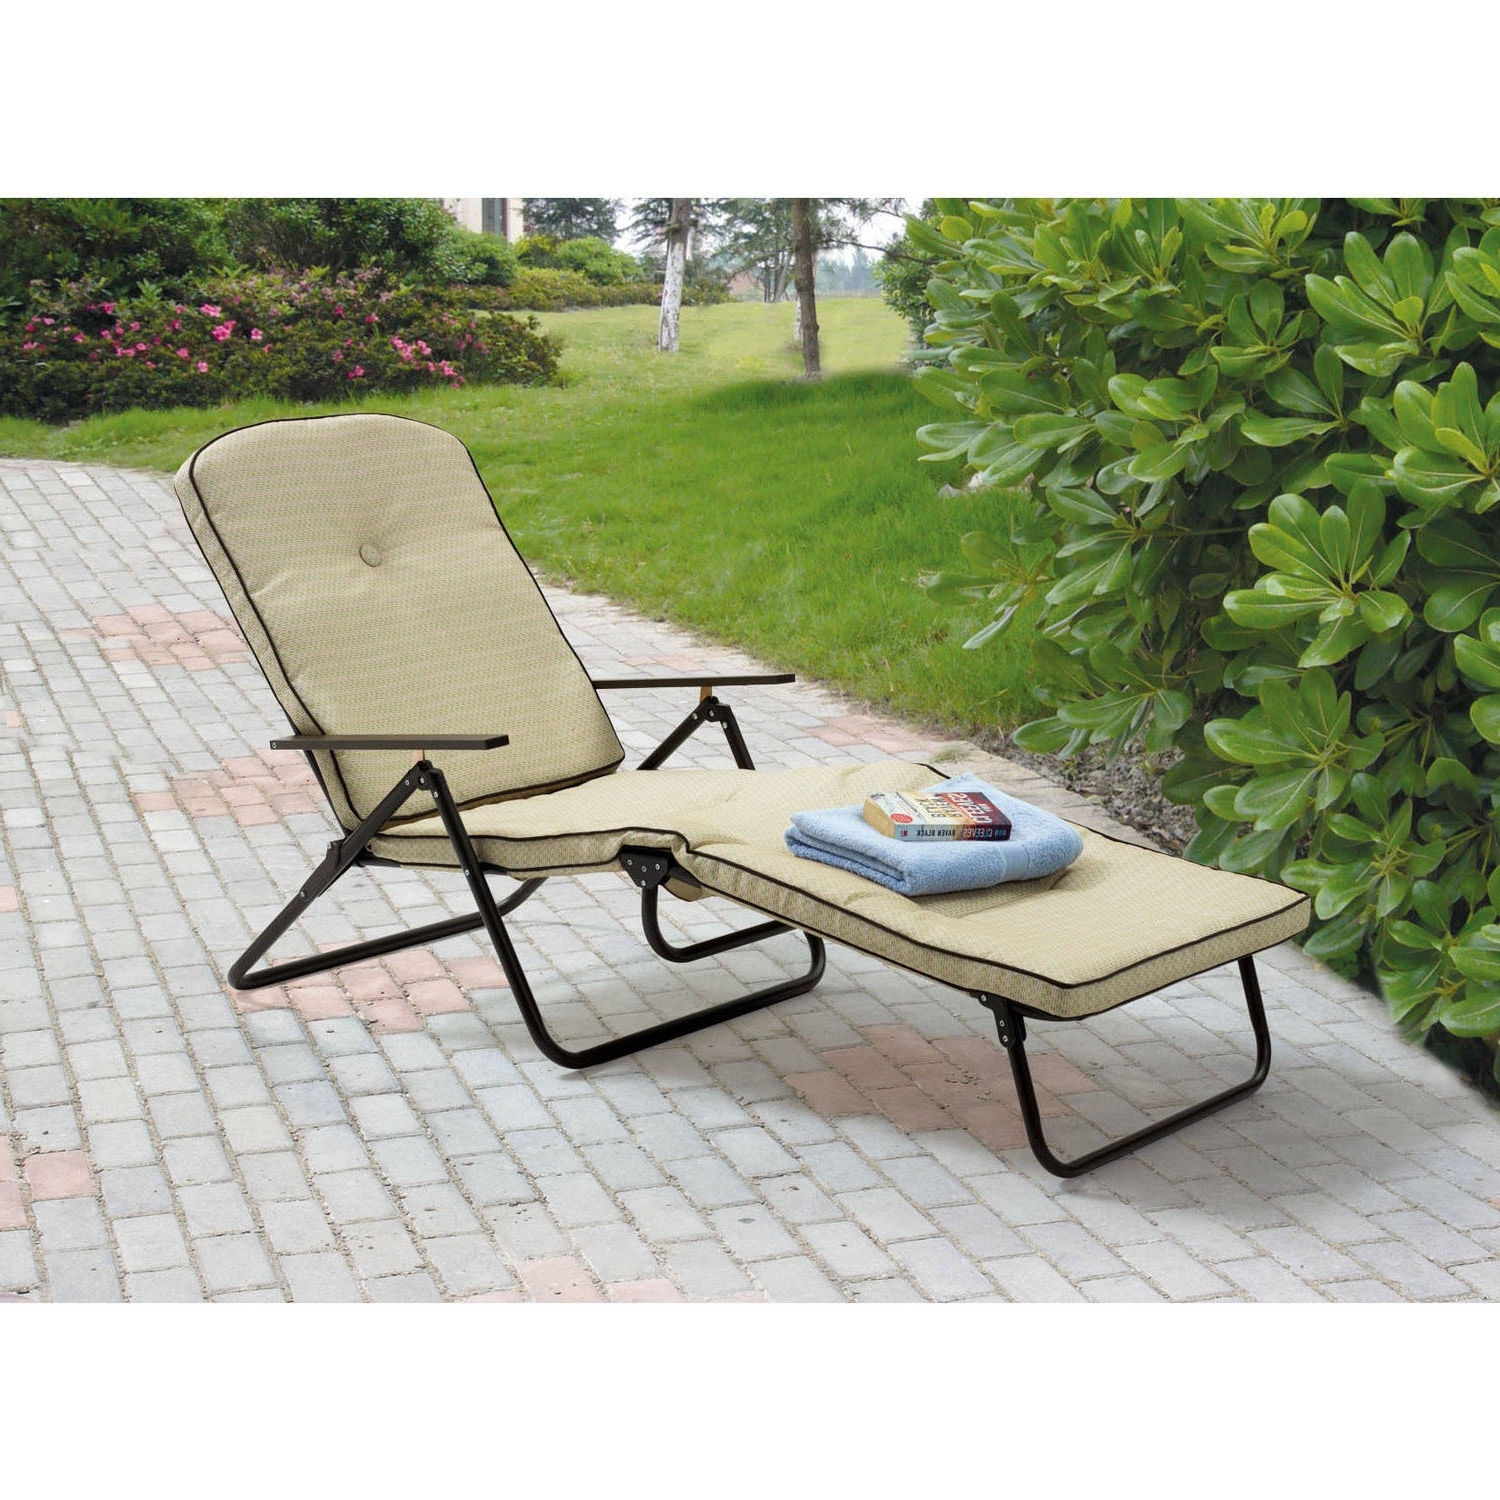 Popular Mainstays Sand Dune Outdoor Padded Folding Chaise Lounge, Tan In Walmart Chaise Lounge Chairs (View 9 of 15)